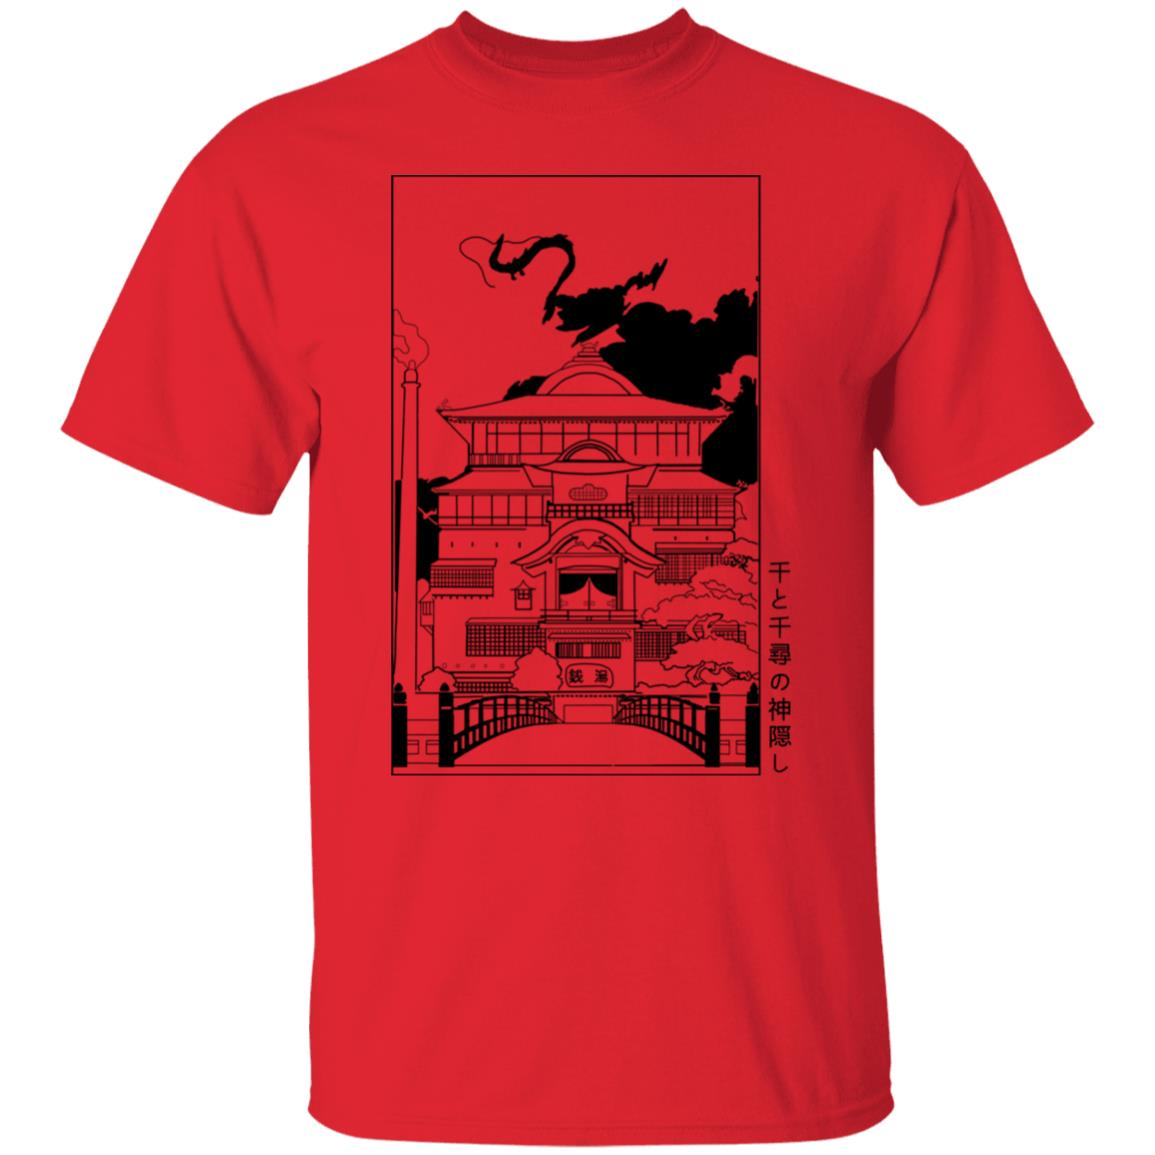 Spirited Away Bathhouse illustrated Graphic T Shirt